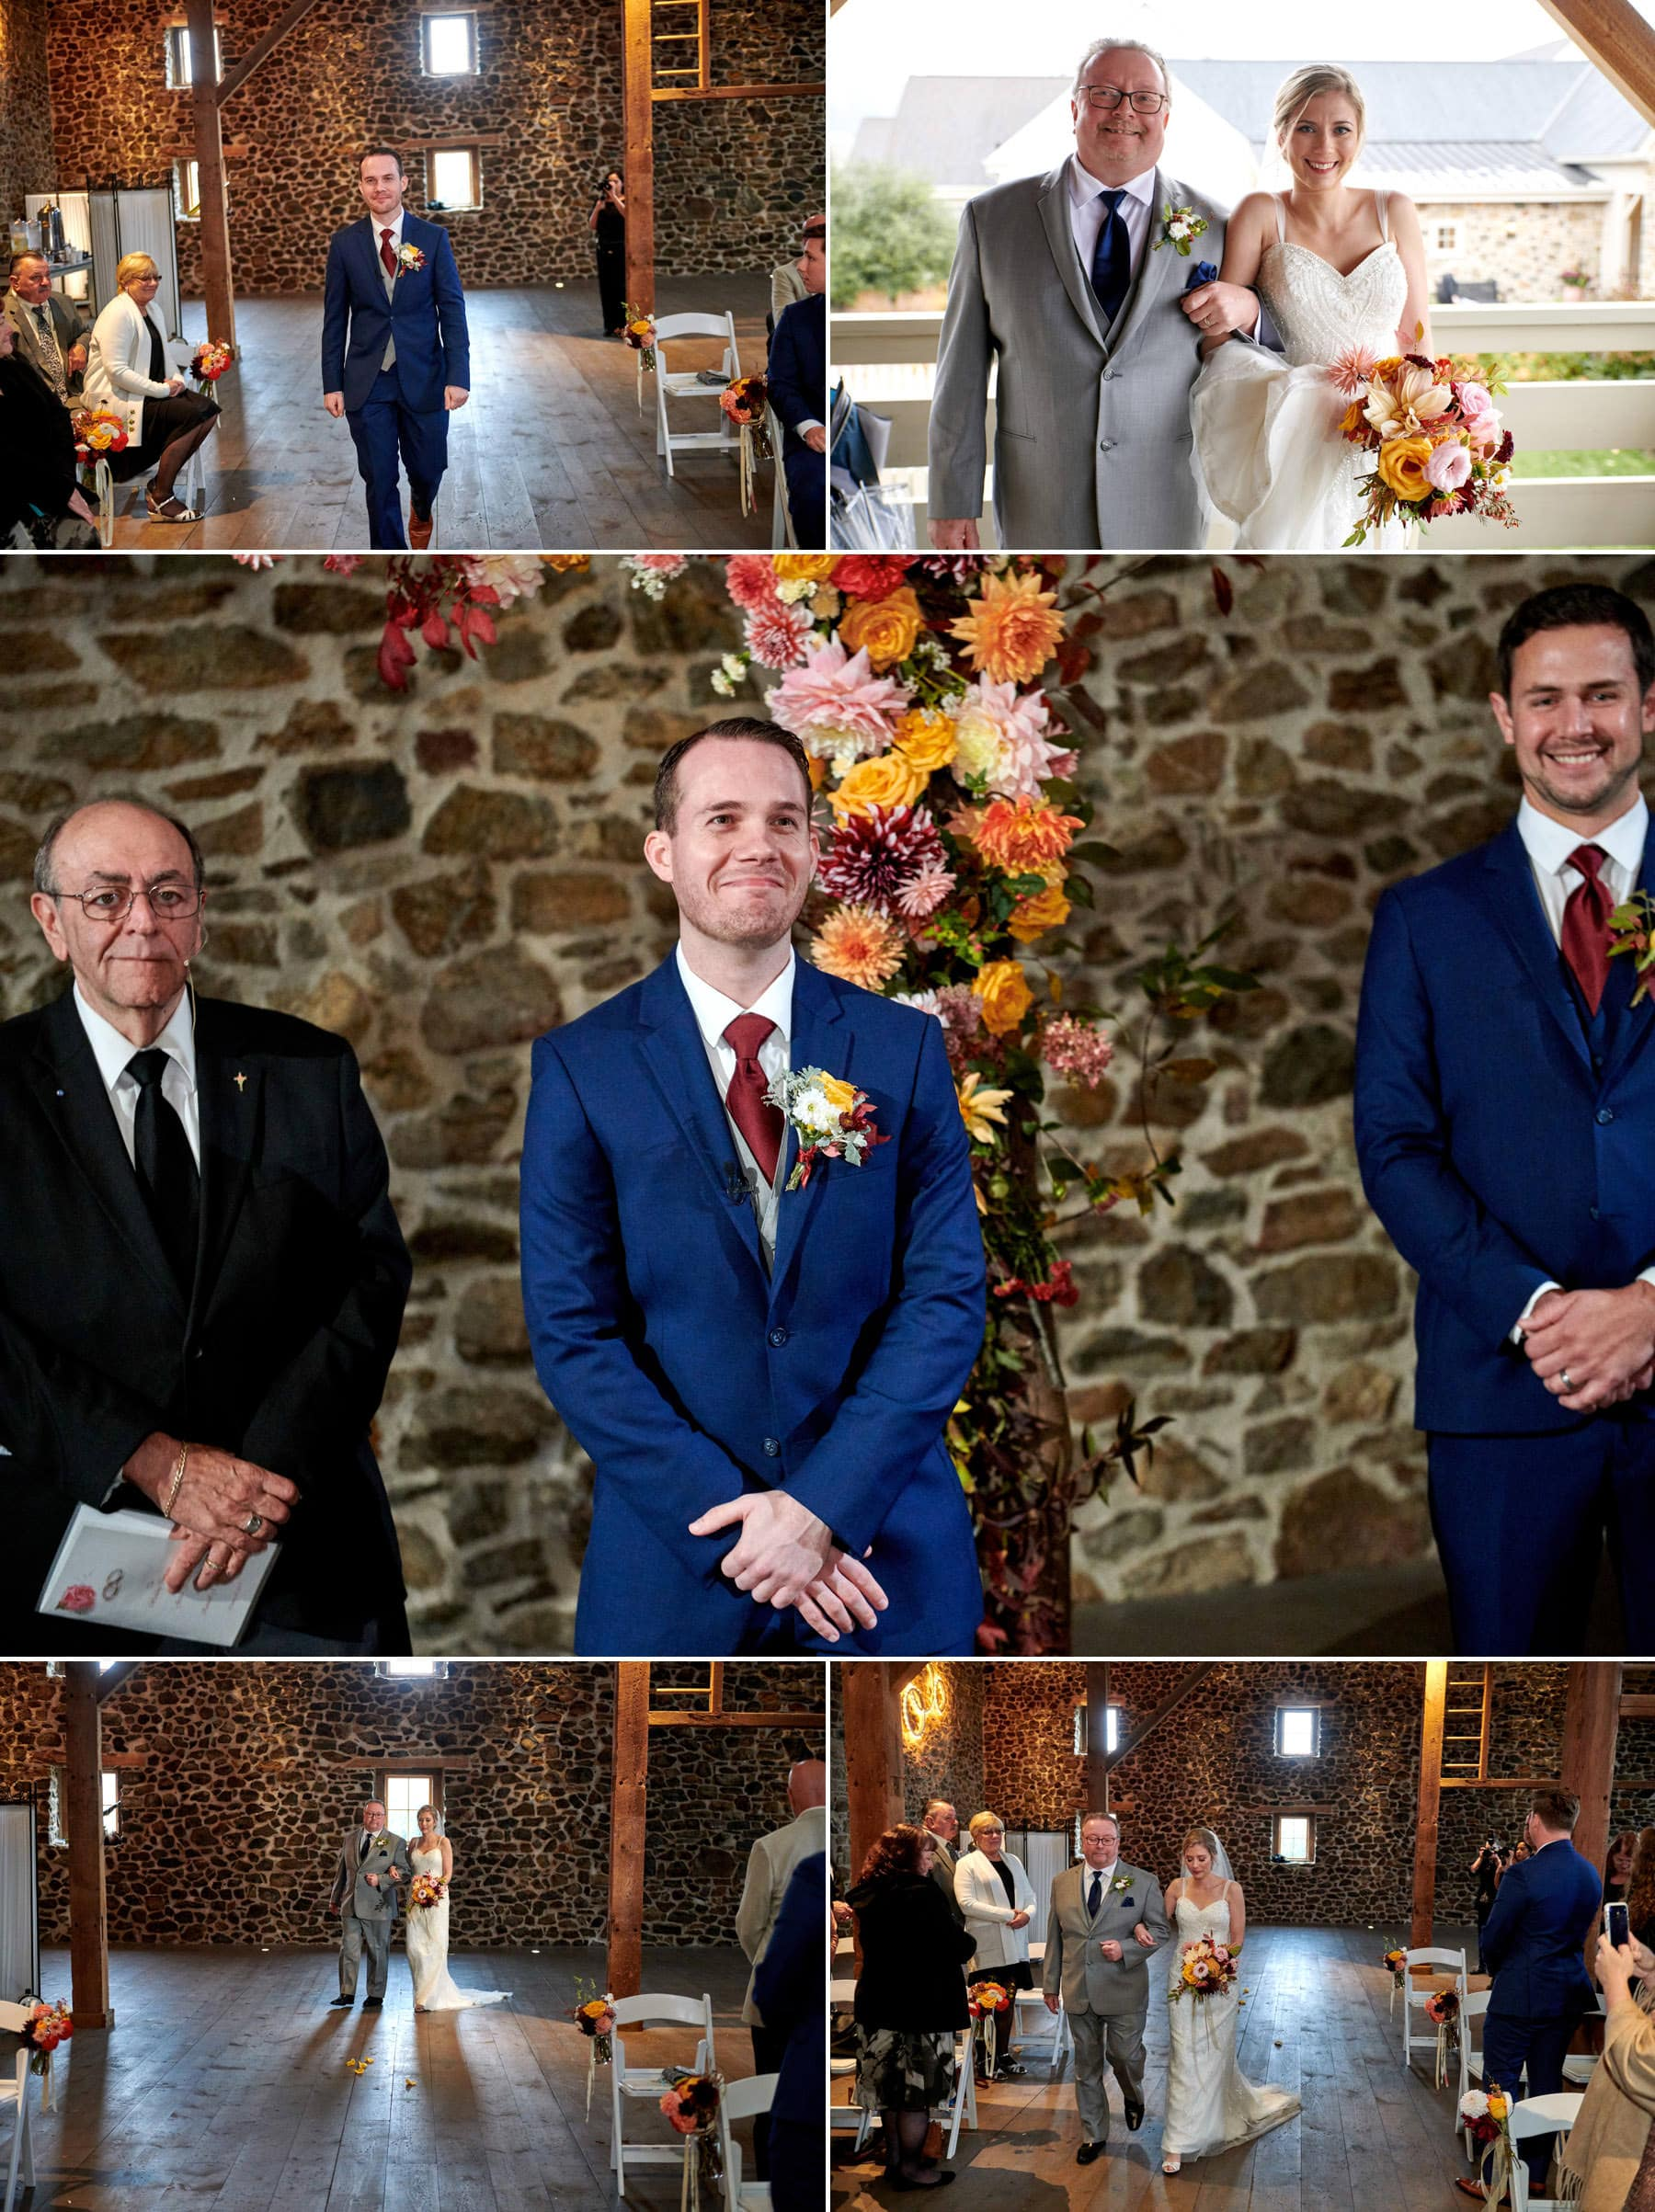 French Creek Golf Club indoor wedding ceremony photos